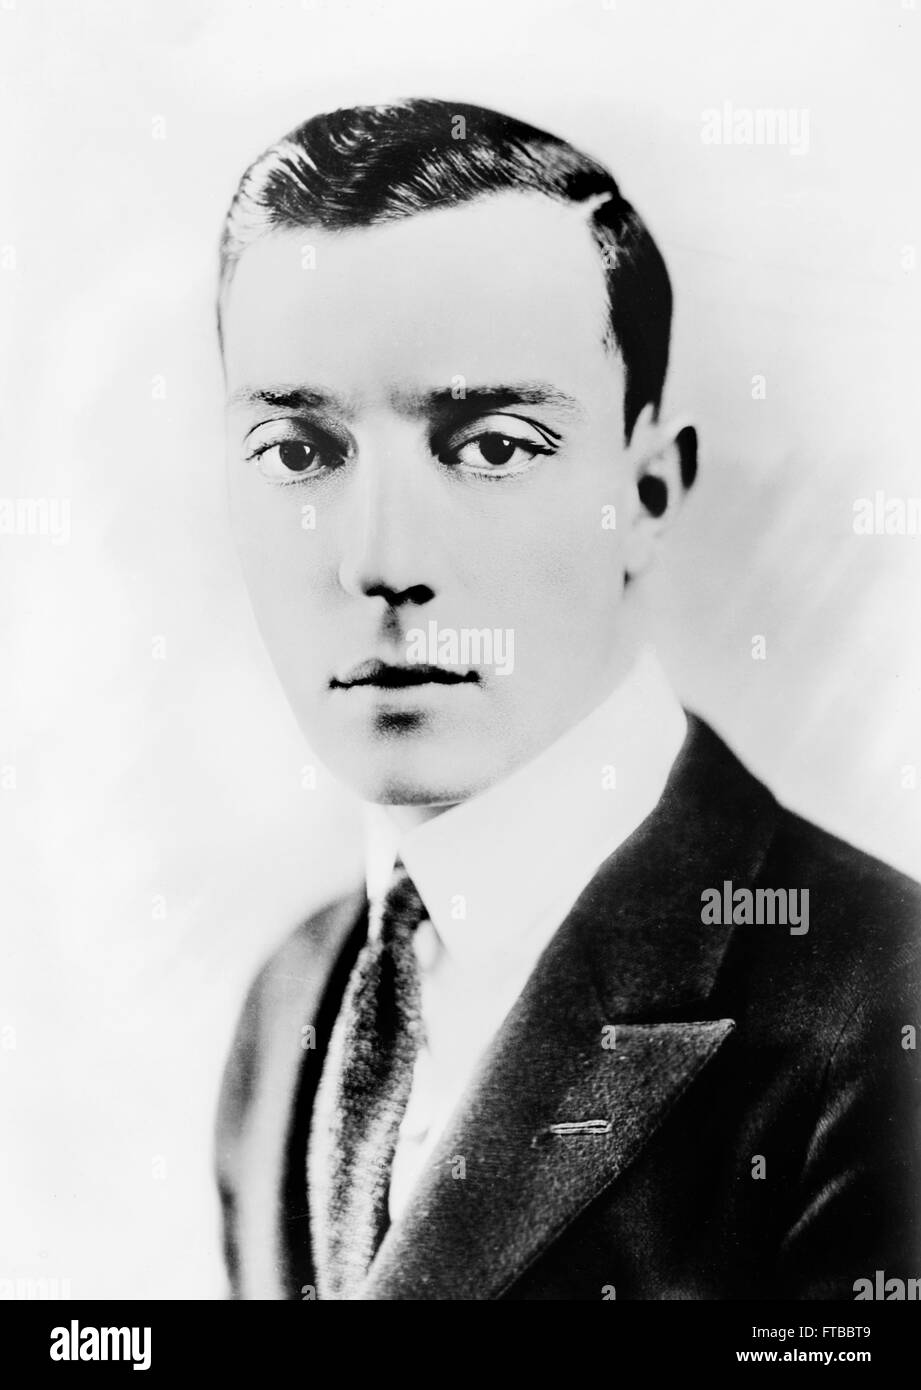 Portrait of the silent film star, Buster Keaton. - Stock Image